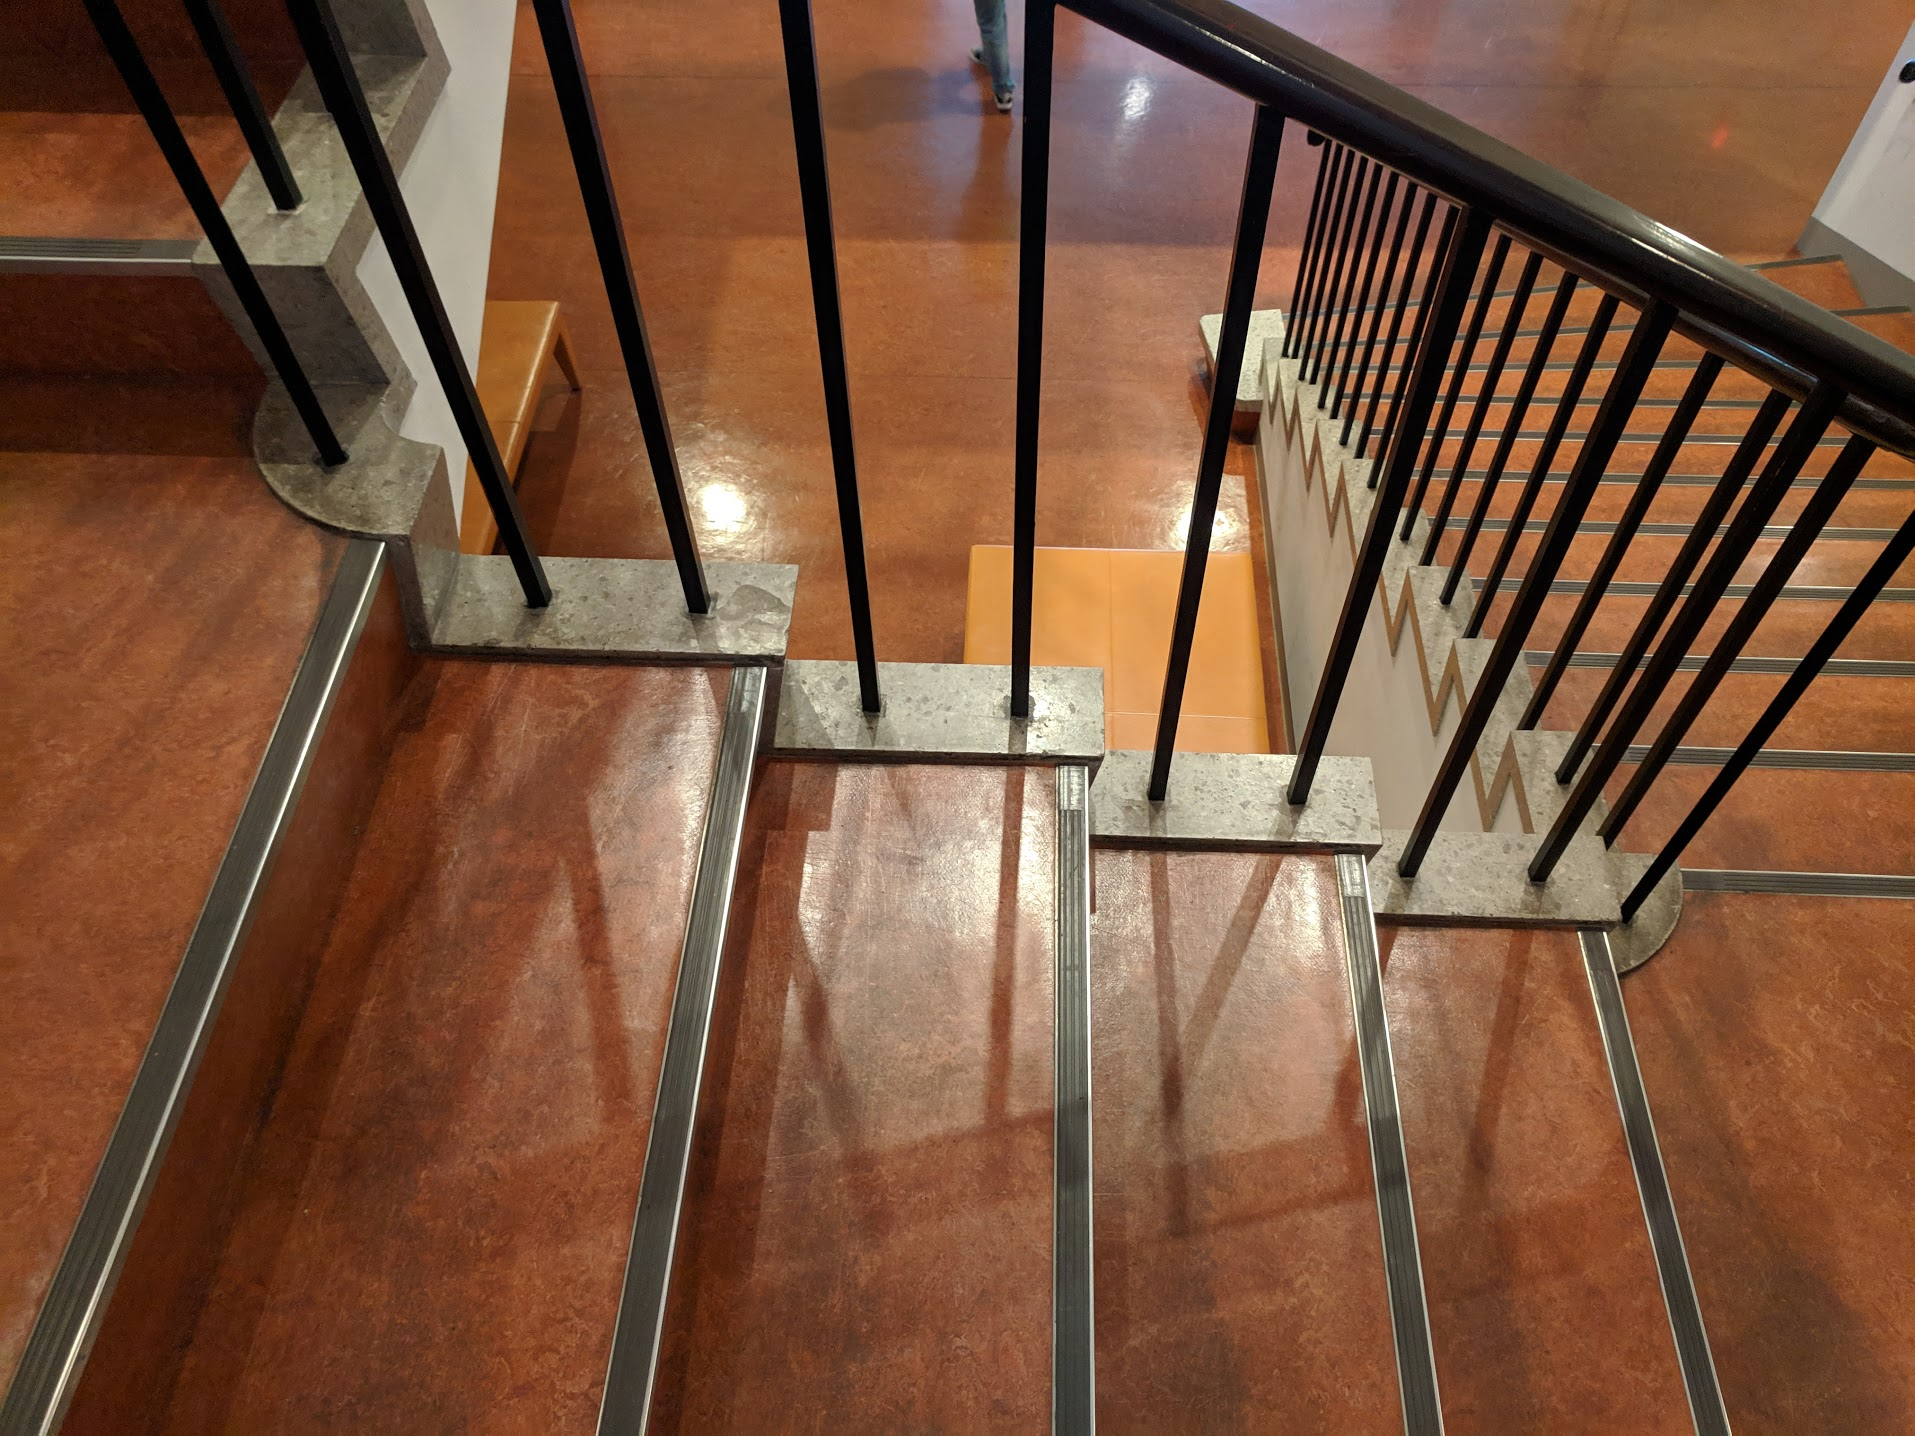 Linoleum, curved corners and safety